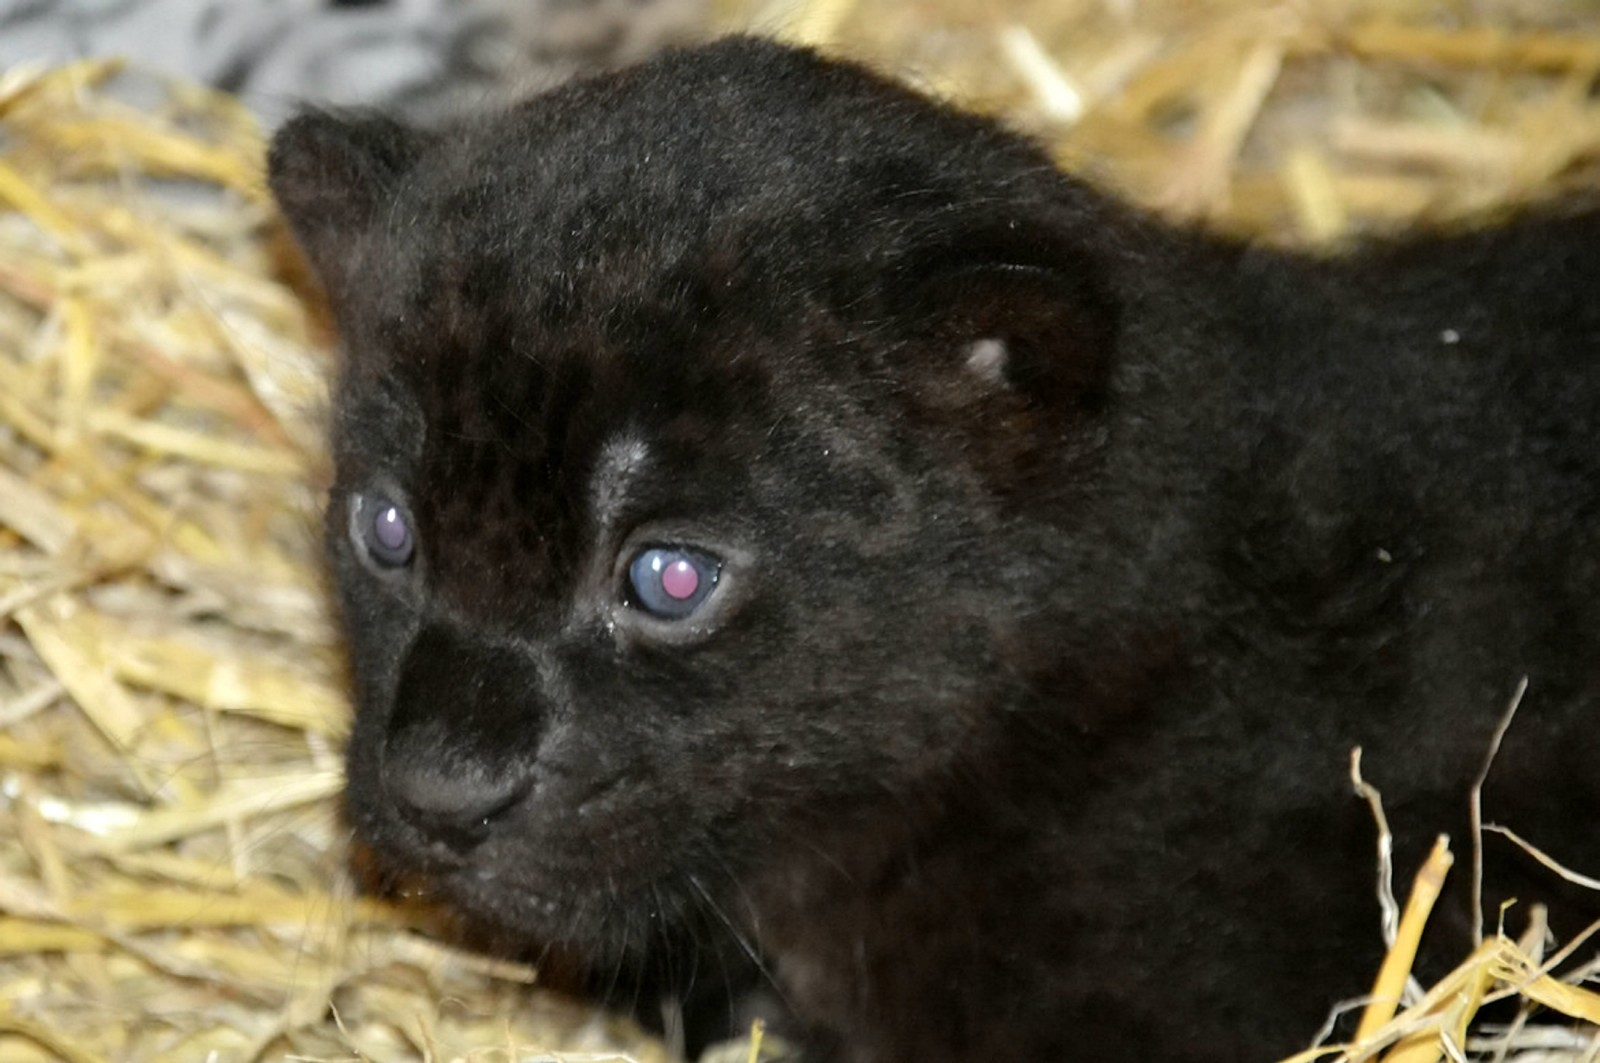 Baby Jaguars . See SWNS story SWJAG: A pair of adorable baby jaguars have been born at a wildlife park but couldn't look more different - because one is all black. The twin big cats were born at Wingham Wildlife Park earlier this month to their mother Luna, and underwent their first health check. According to keepers at the park in Canterbury, Kent, the black jaguar cub is the same colour as her mother, while the male, yellow-spotted cub takes after their father, Loki. It is the second time Luna has given birth at the park after previously having the twins' older sister Poppy.